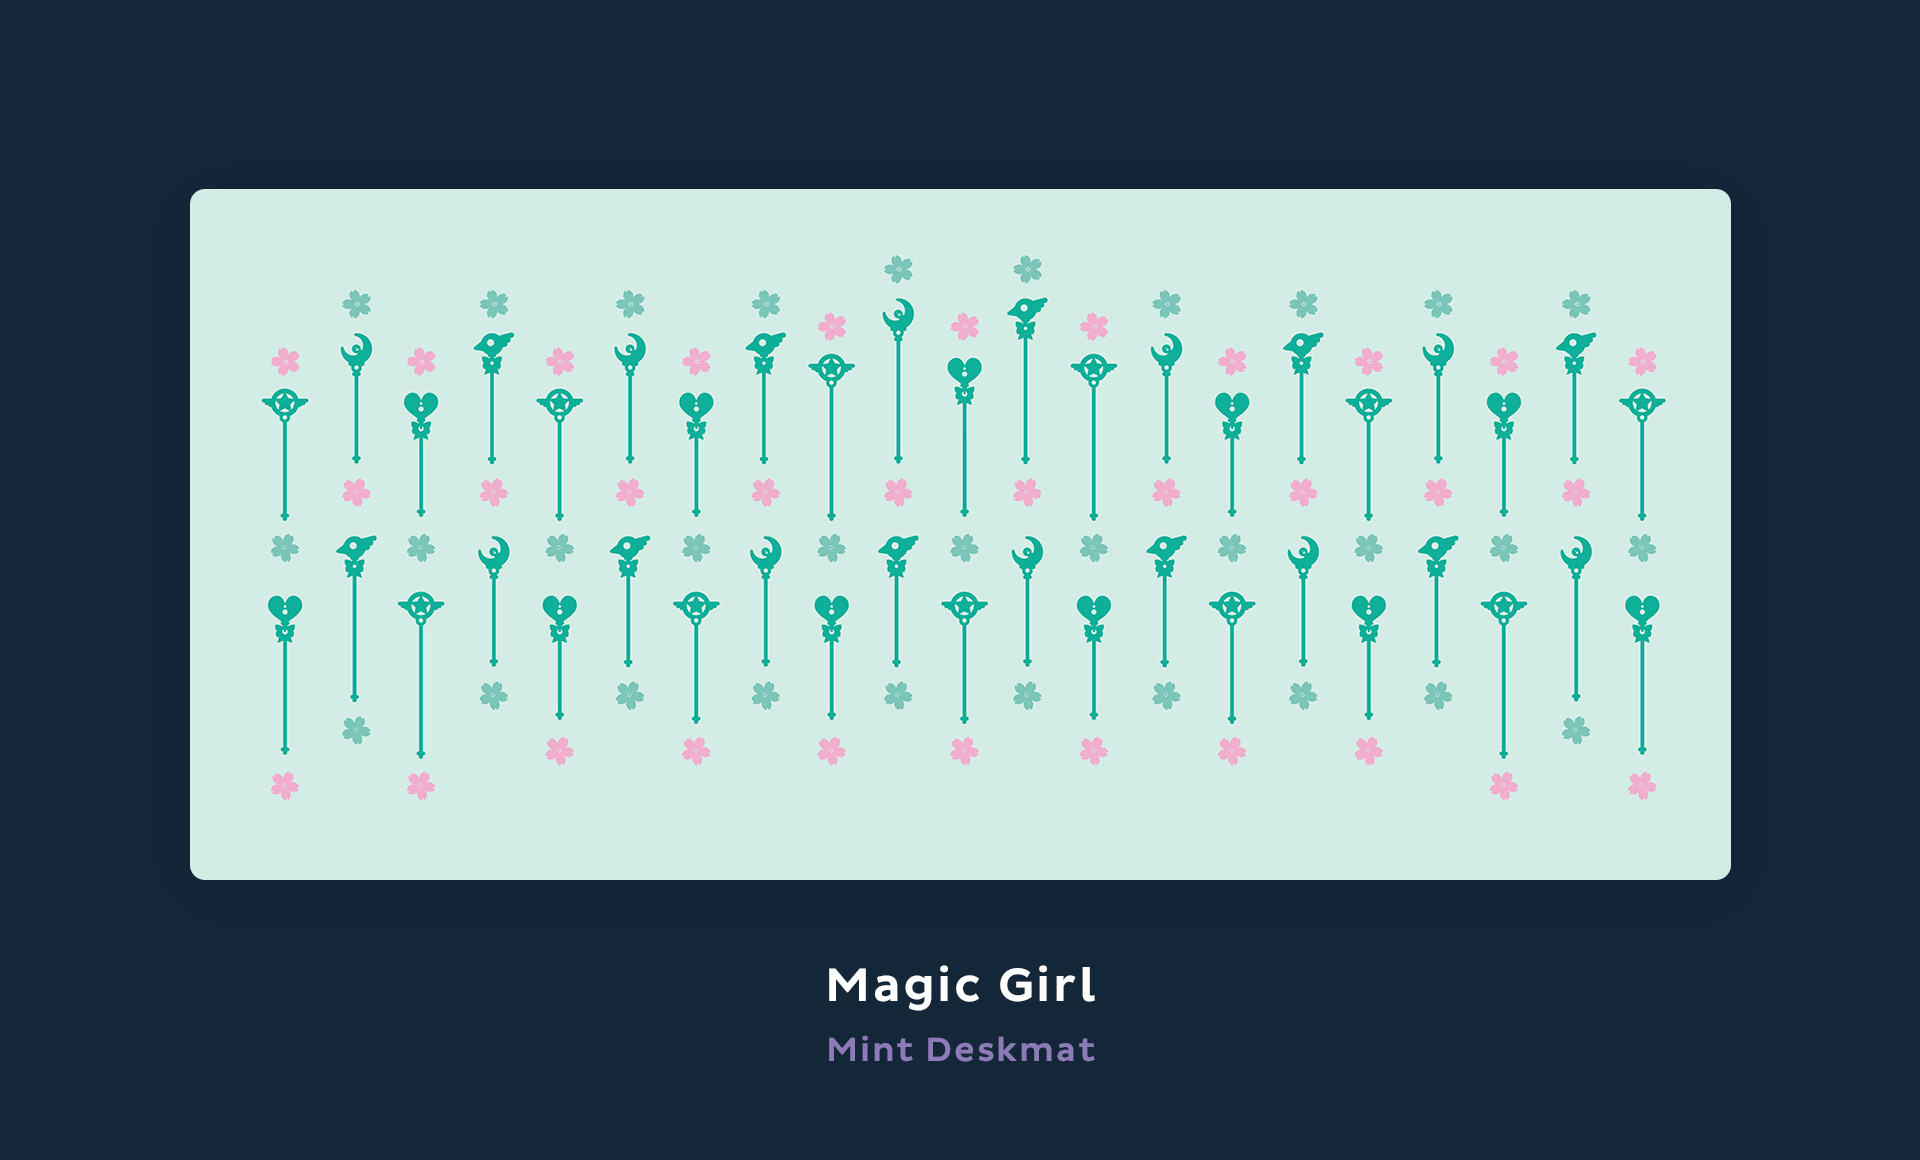 Magic Girl mint deskmat.